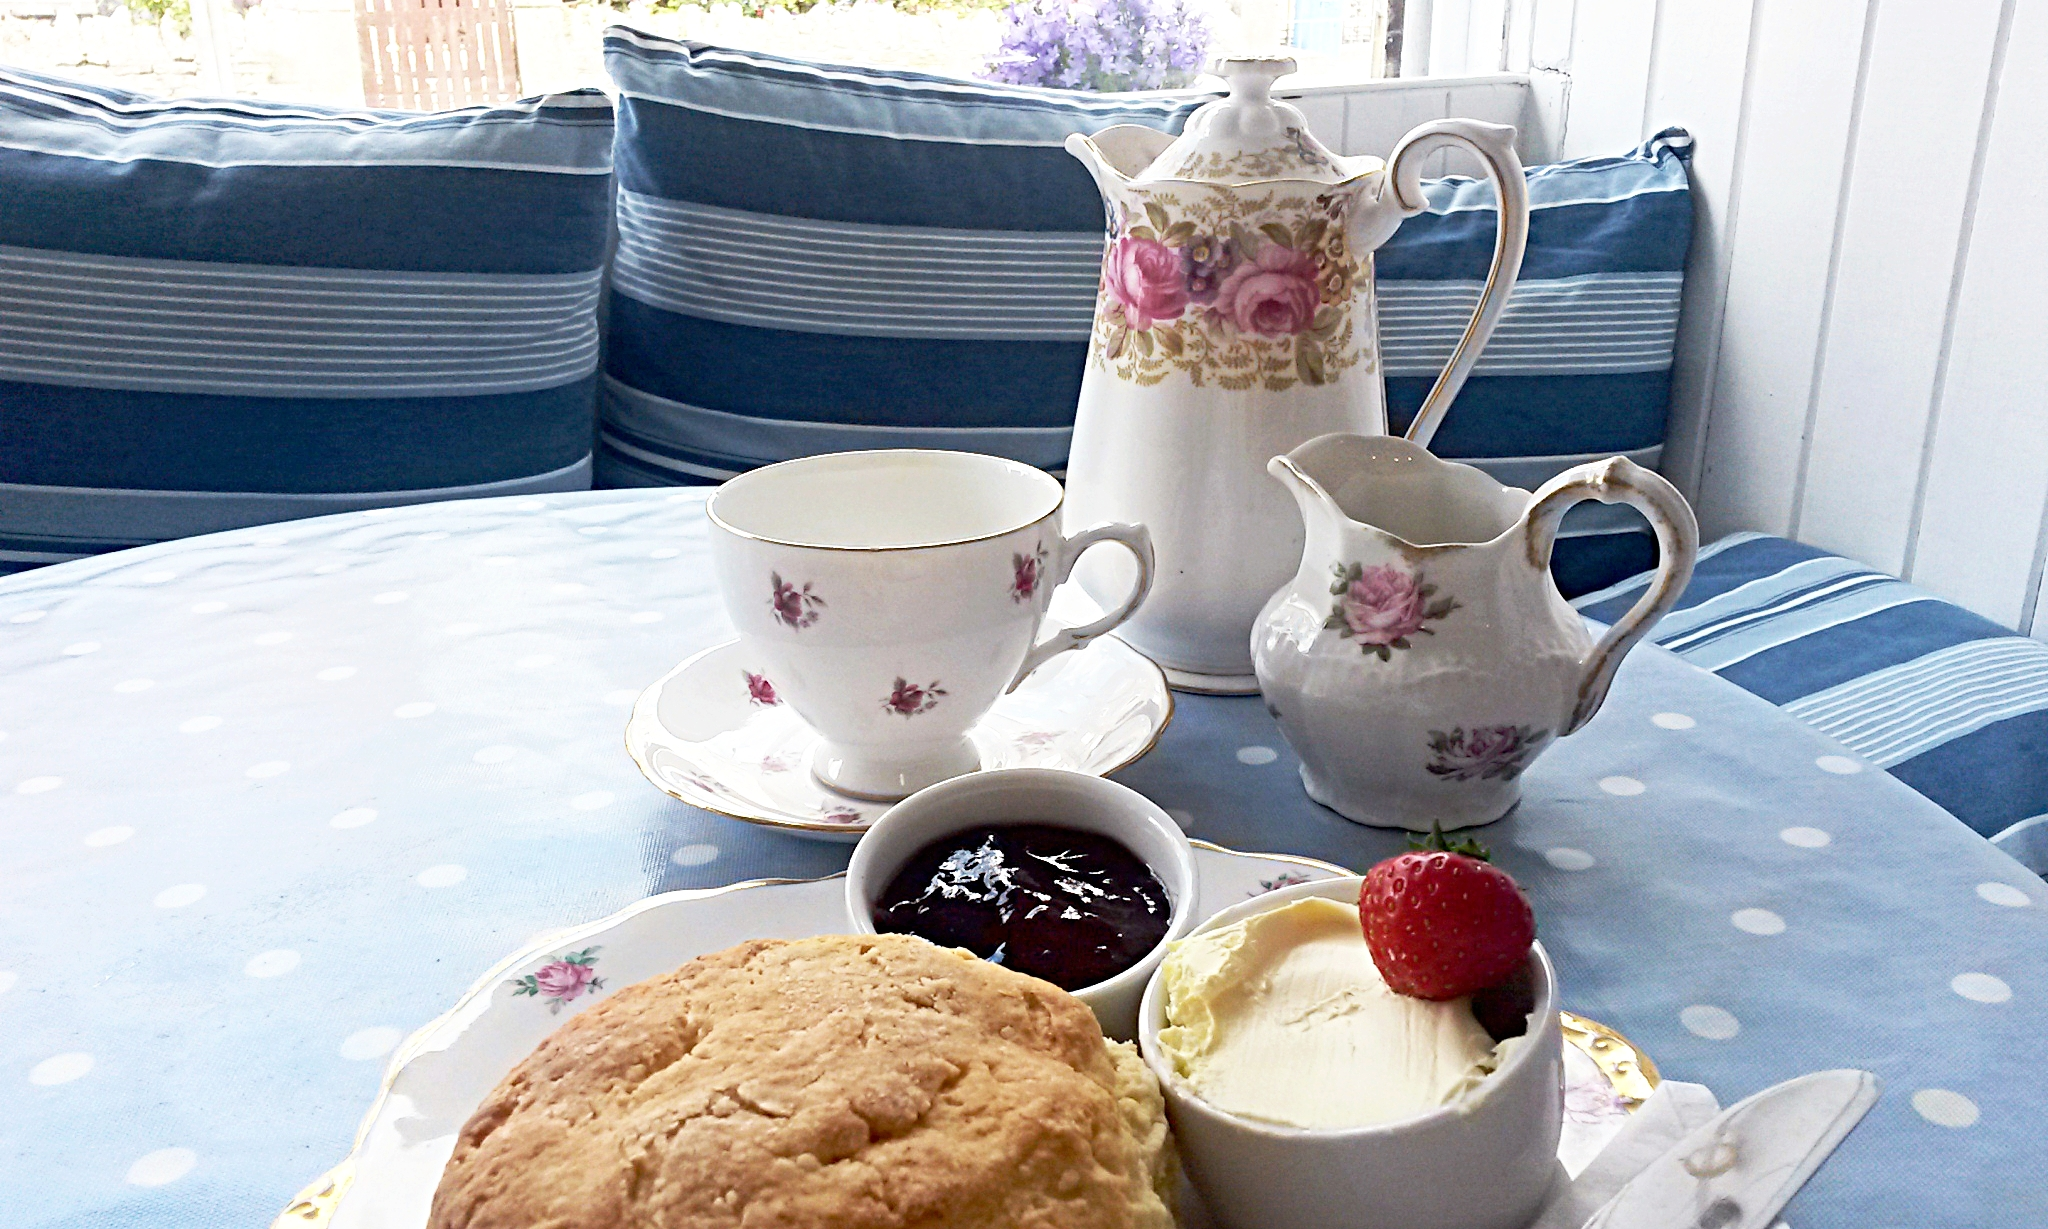 CAFE CLOUD - Sit back and relax in this wonderful, quaint cafe with a vintage twist, just up from Newquay Harbour. Find lovely breakfasts, home-made waffles, sandwiches, toasties, cakes, quiches, sundaes and the best cream tea in town! Lots of gluten free options and a vegan selection available. Dog friendly07719 822156